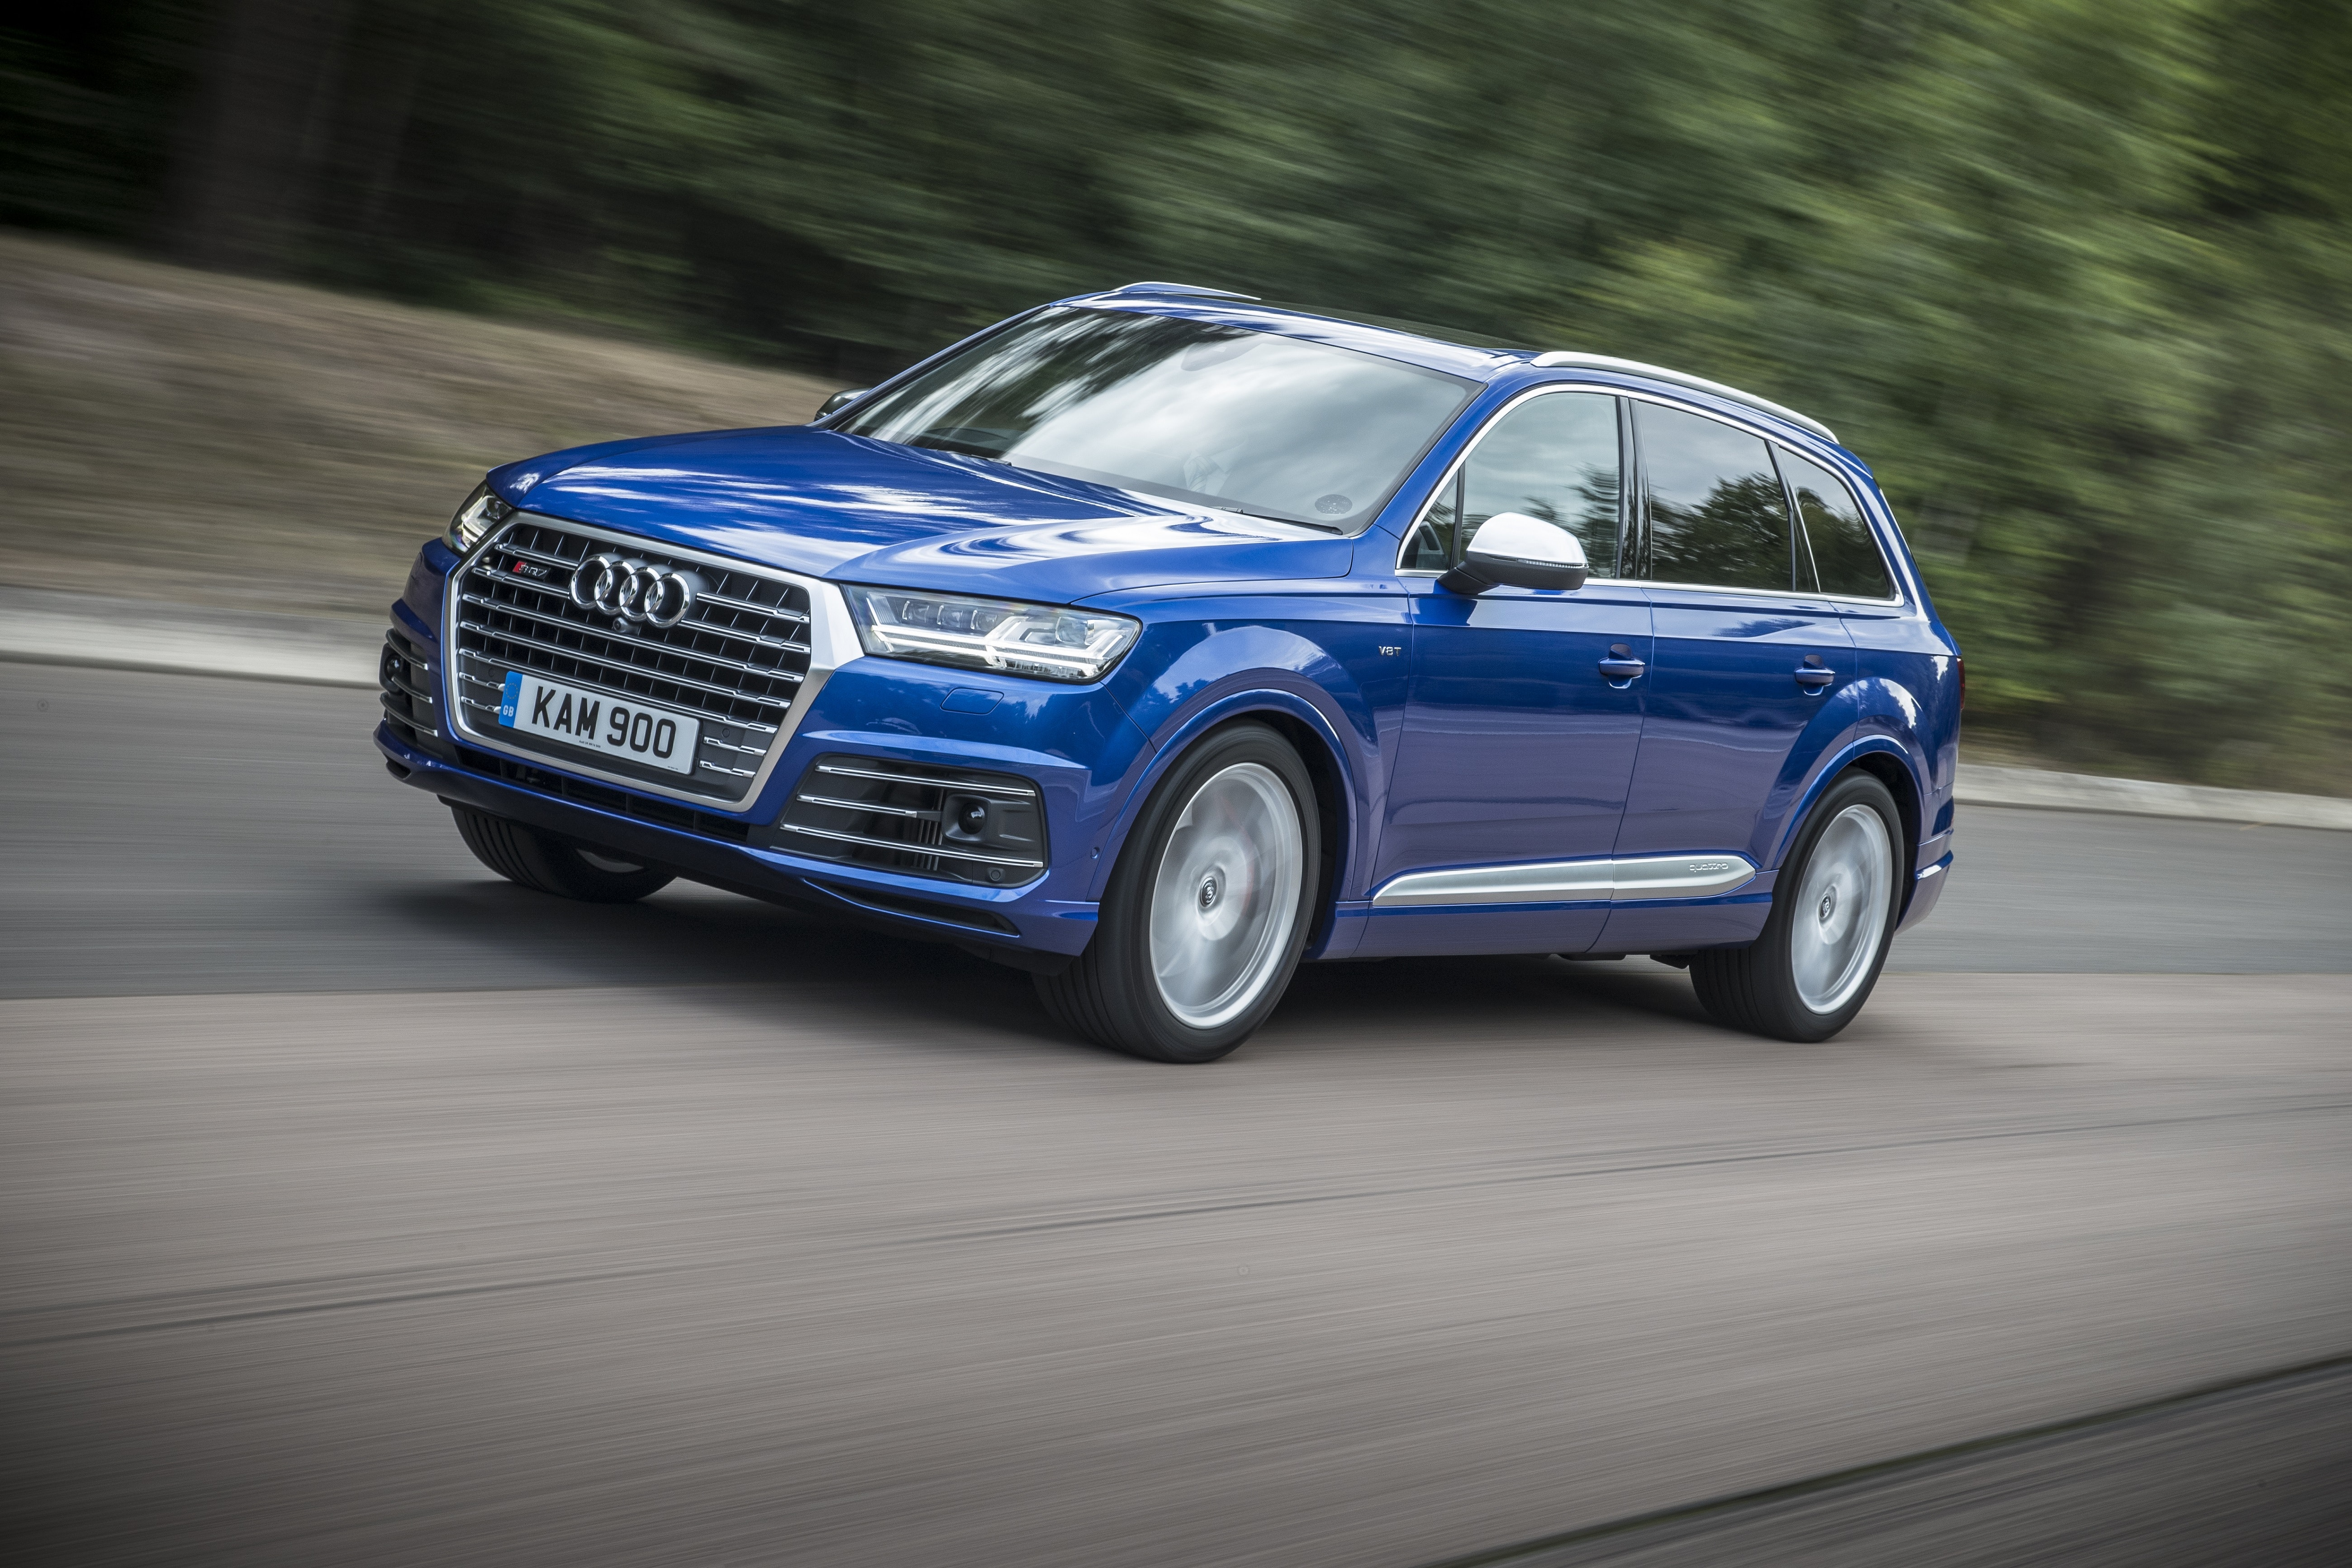 The SQ7 is amazingly fast, capable of sprinting from 0-62mph in less than five seconds